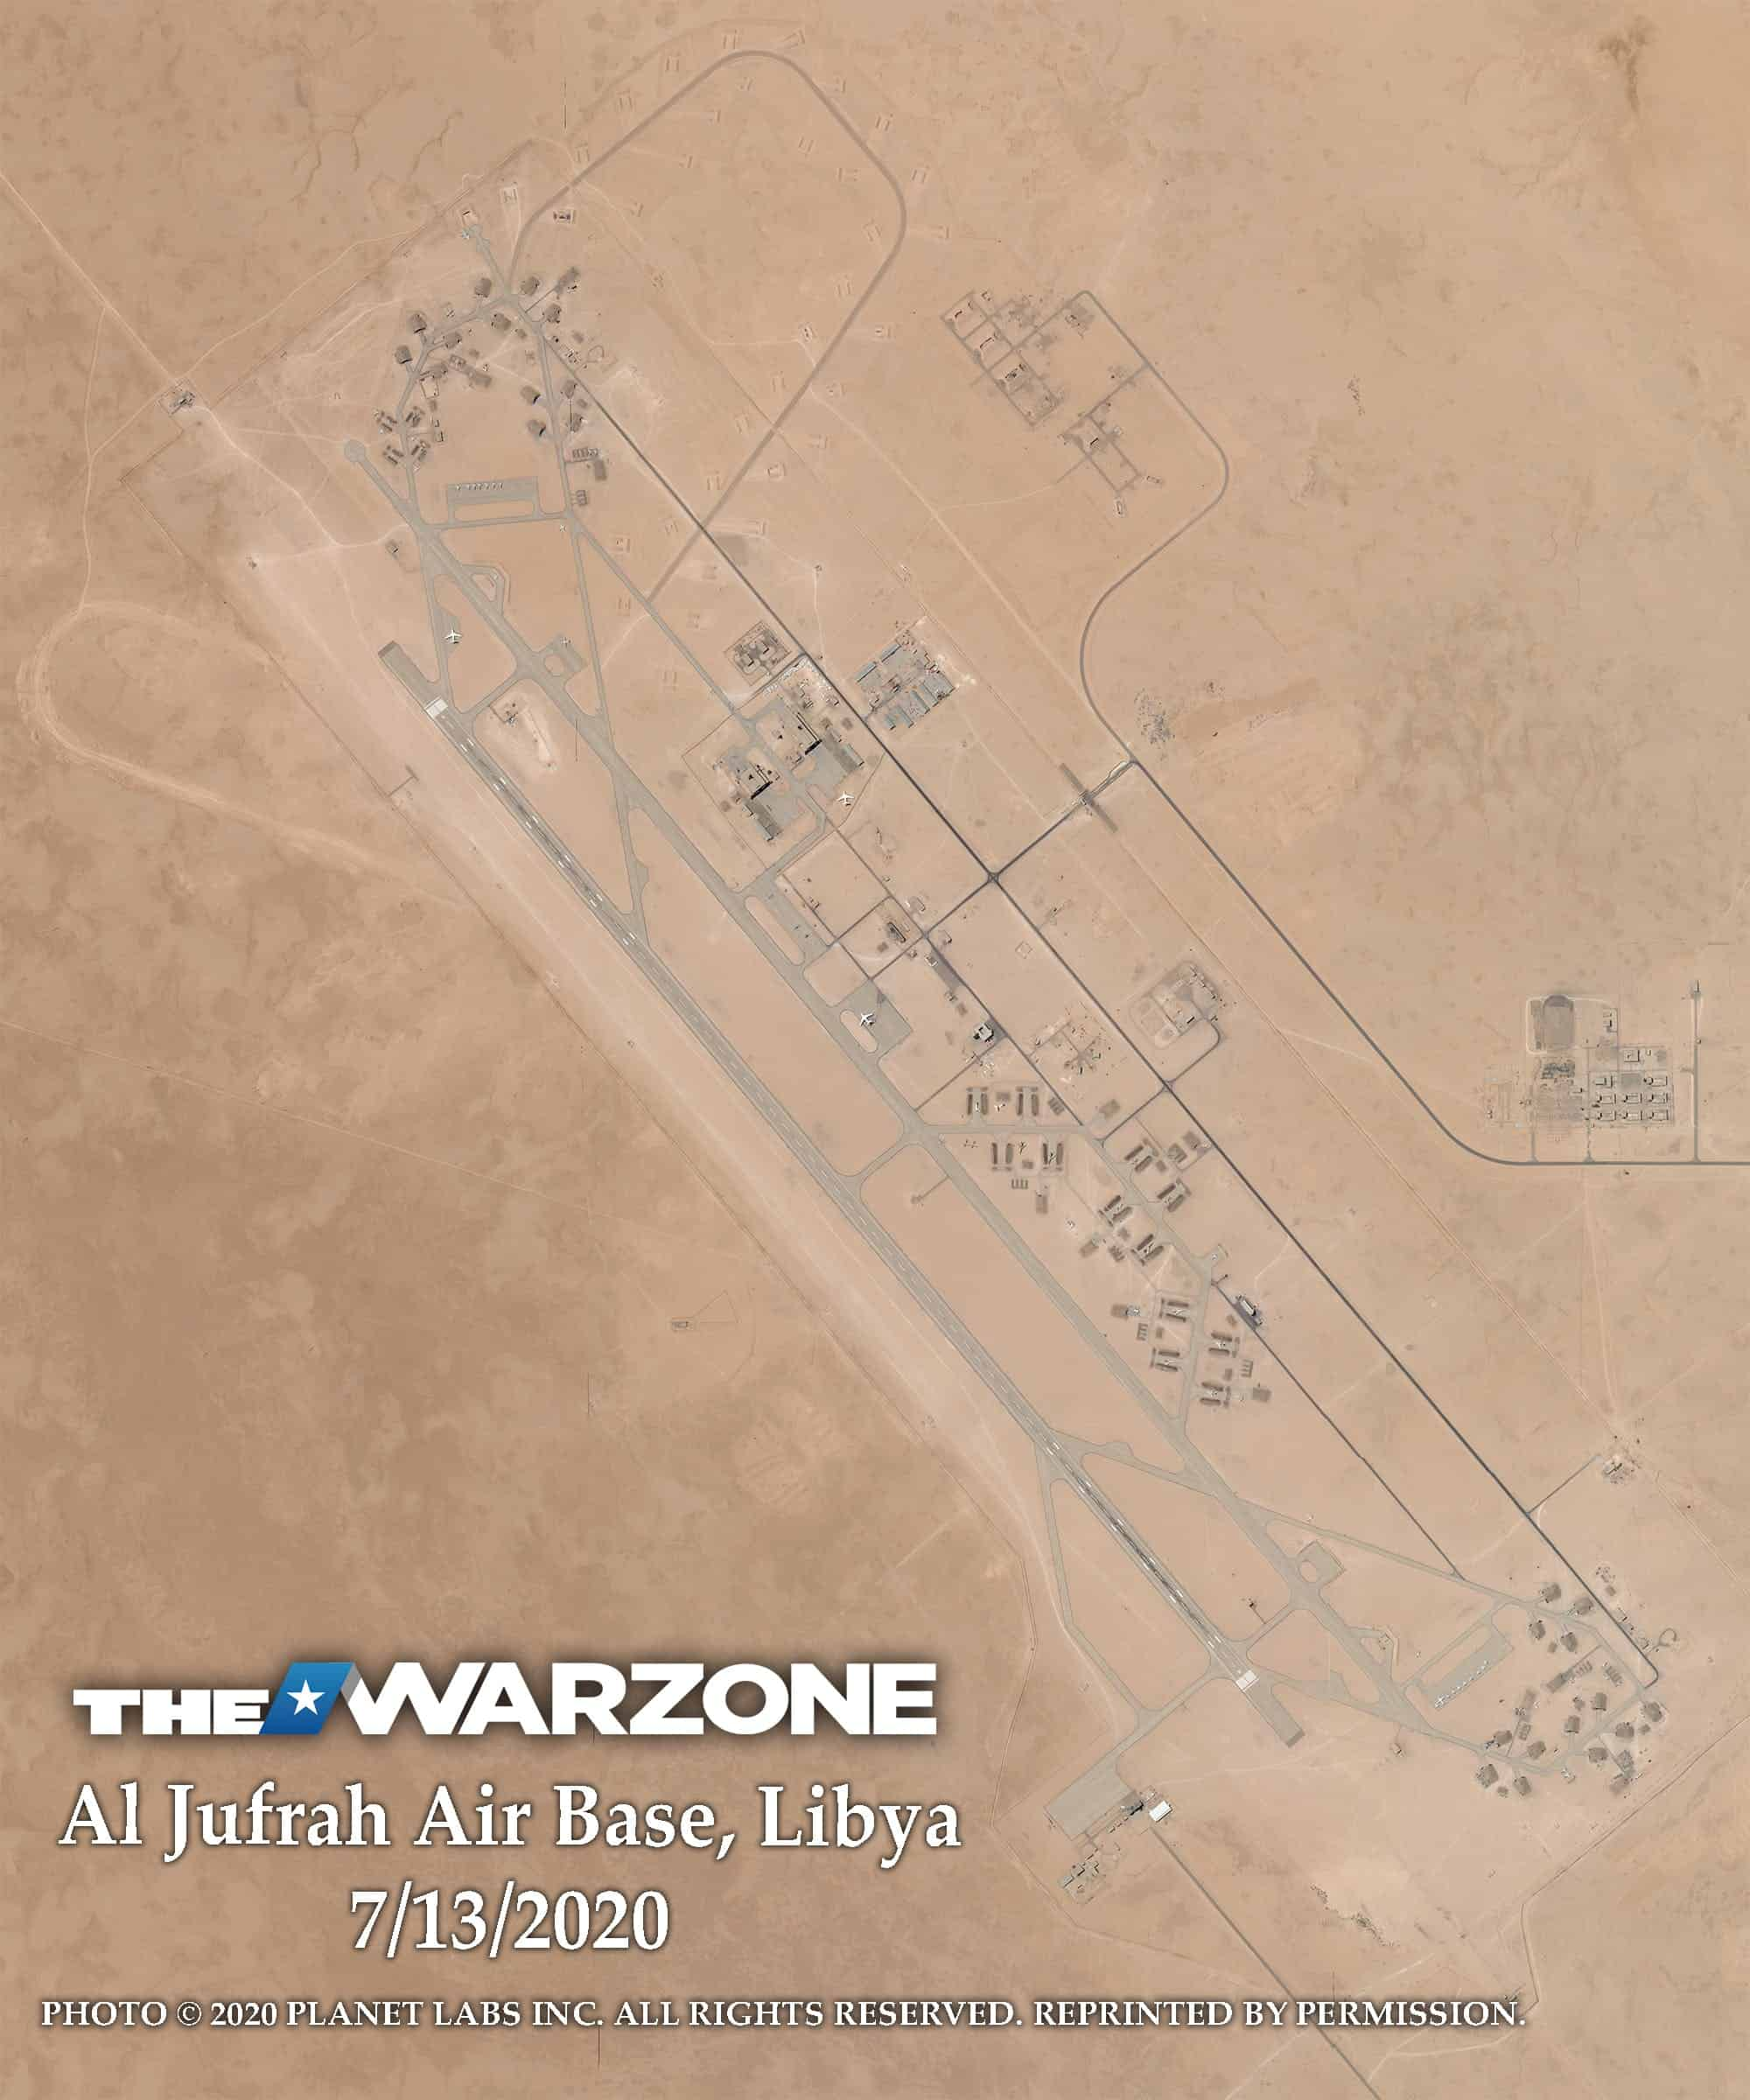 FOTO:https://gifyu.com/image/Q1qDhttps://www.thedrive.com/the-war-zone/34888/two-su-24-combat-jets-seen-in-satellite-image-of-libyan-air-base-as-air-war-intensifies